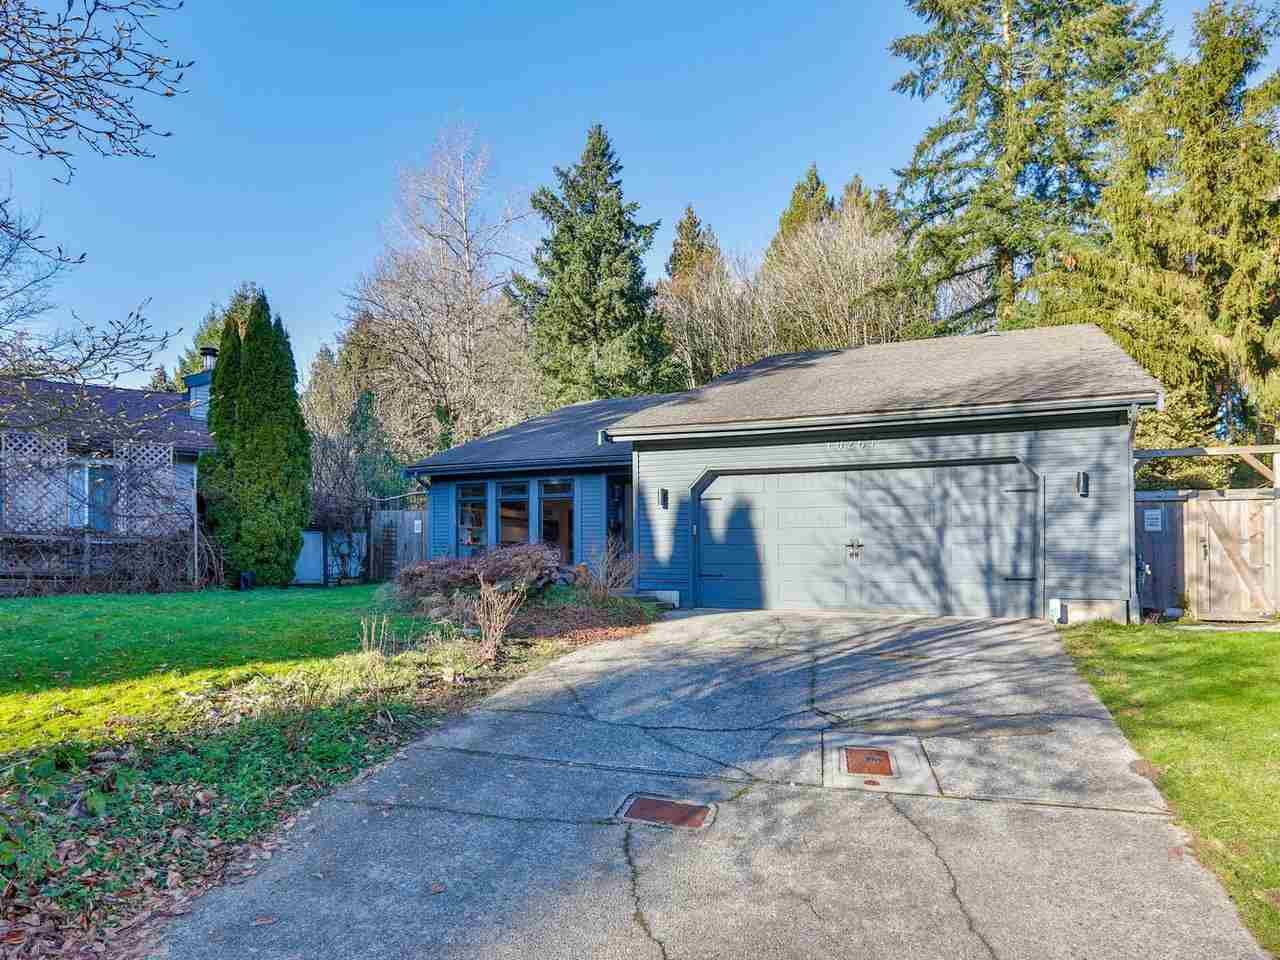 Main Photo: 10267 159A STREET in Surrey: Guildford House for sale (North Surrey)  : MLS®# R2528496